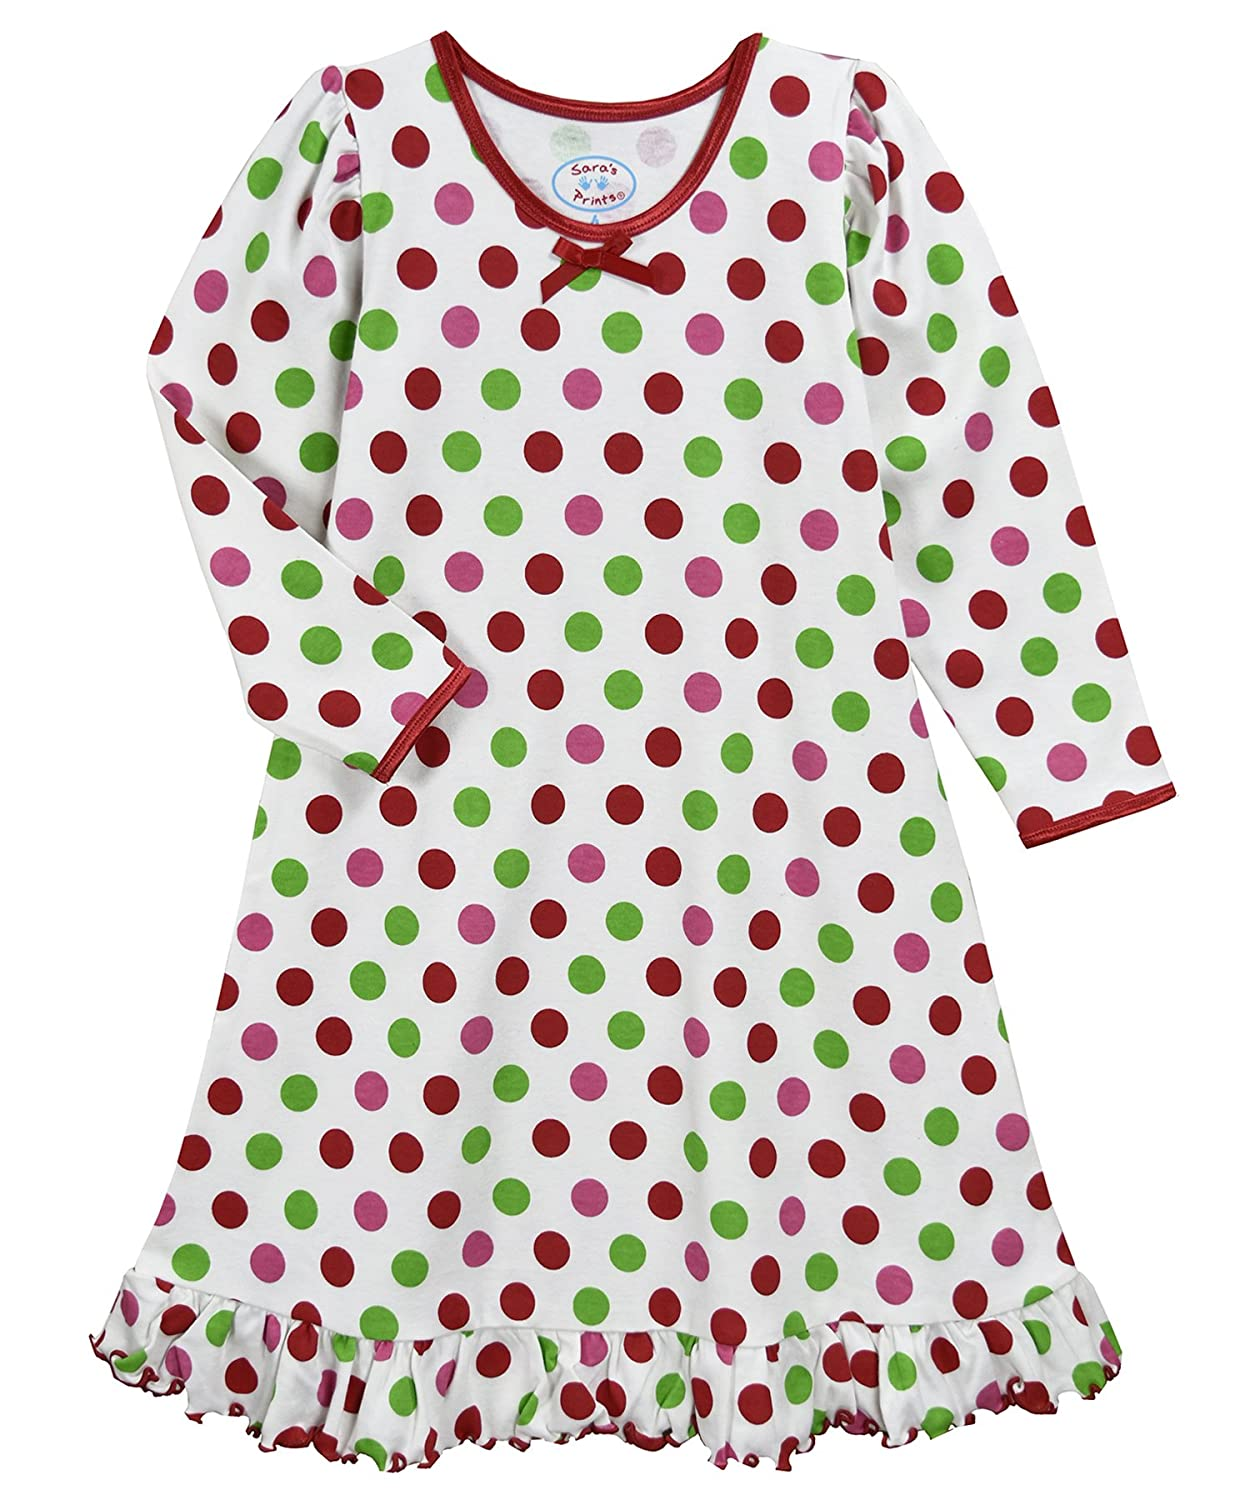 Amazon.com  Sara s Prints Girls  Whirl and Twirl Long Sleeve Nightgown   Clothing a65a87691